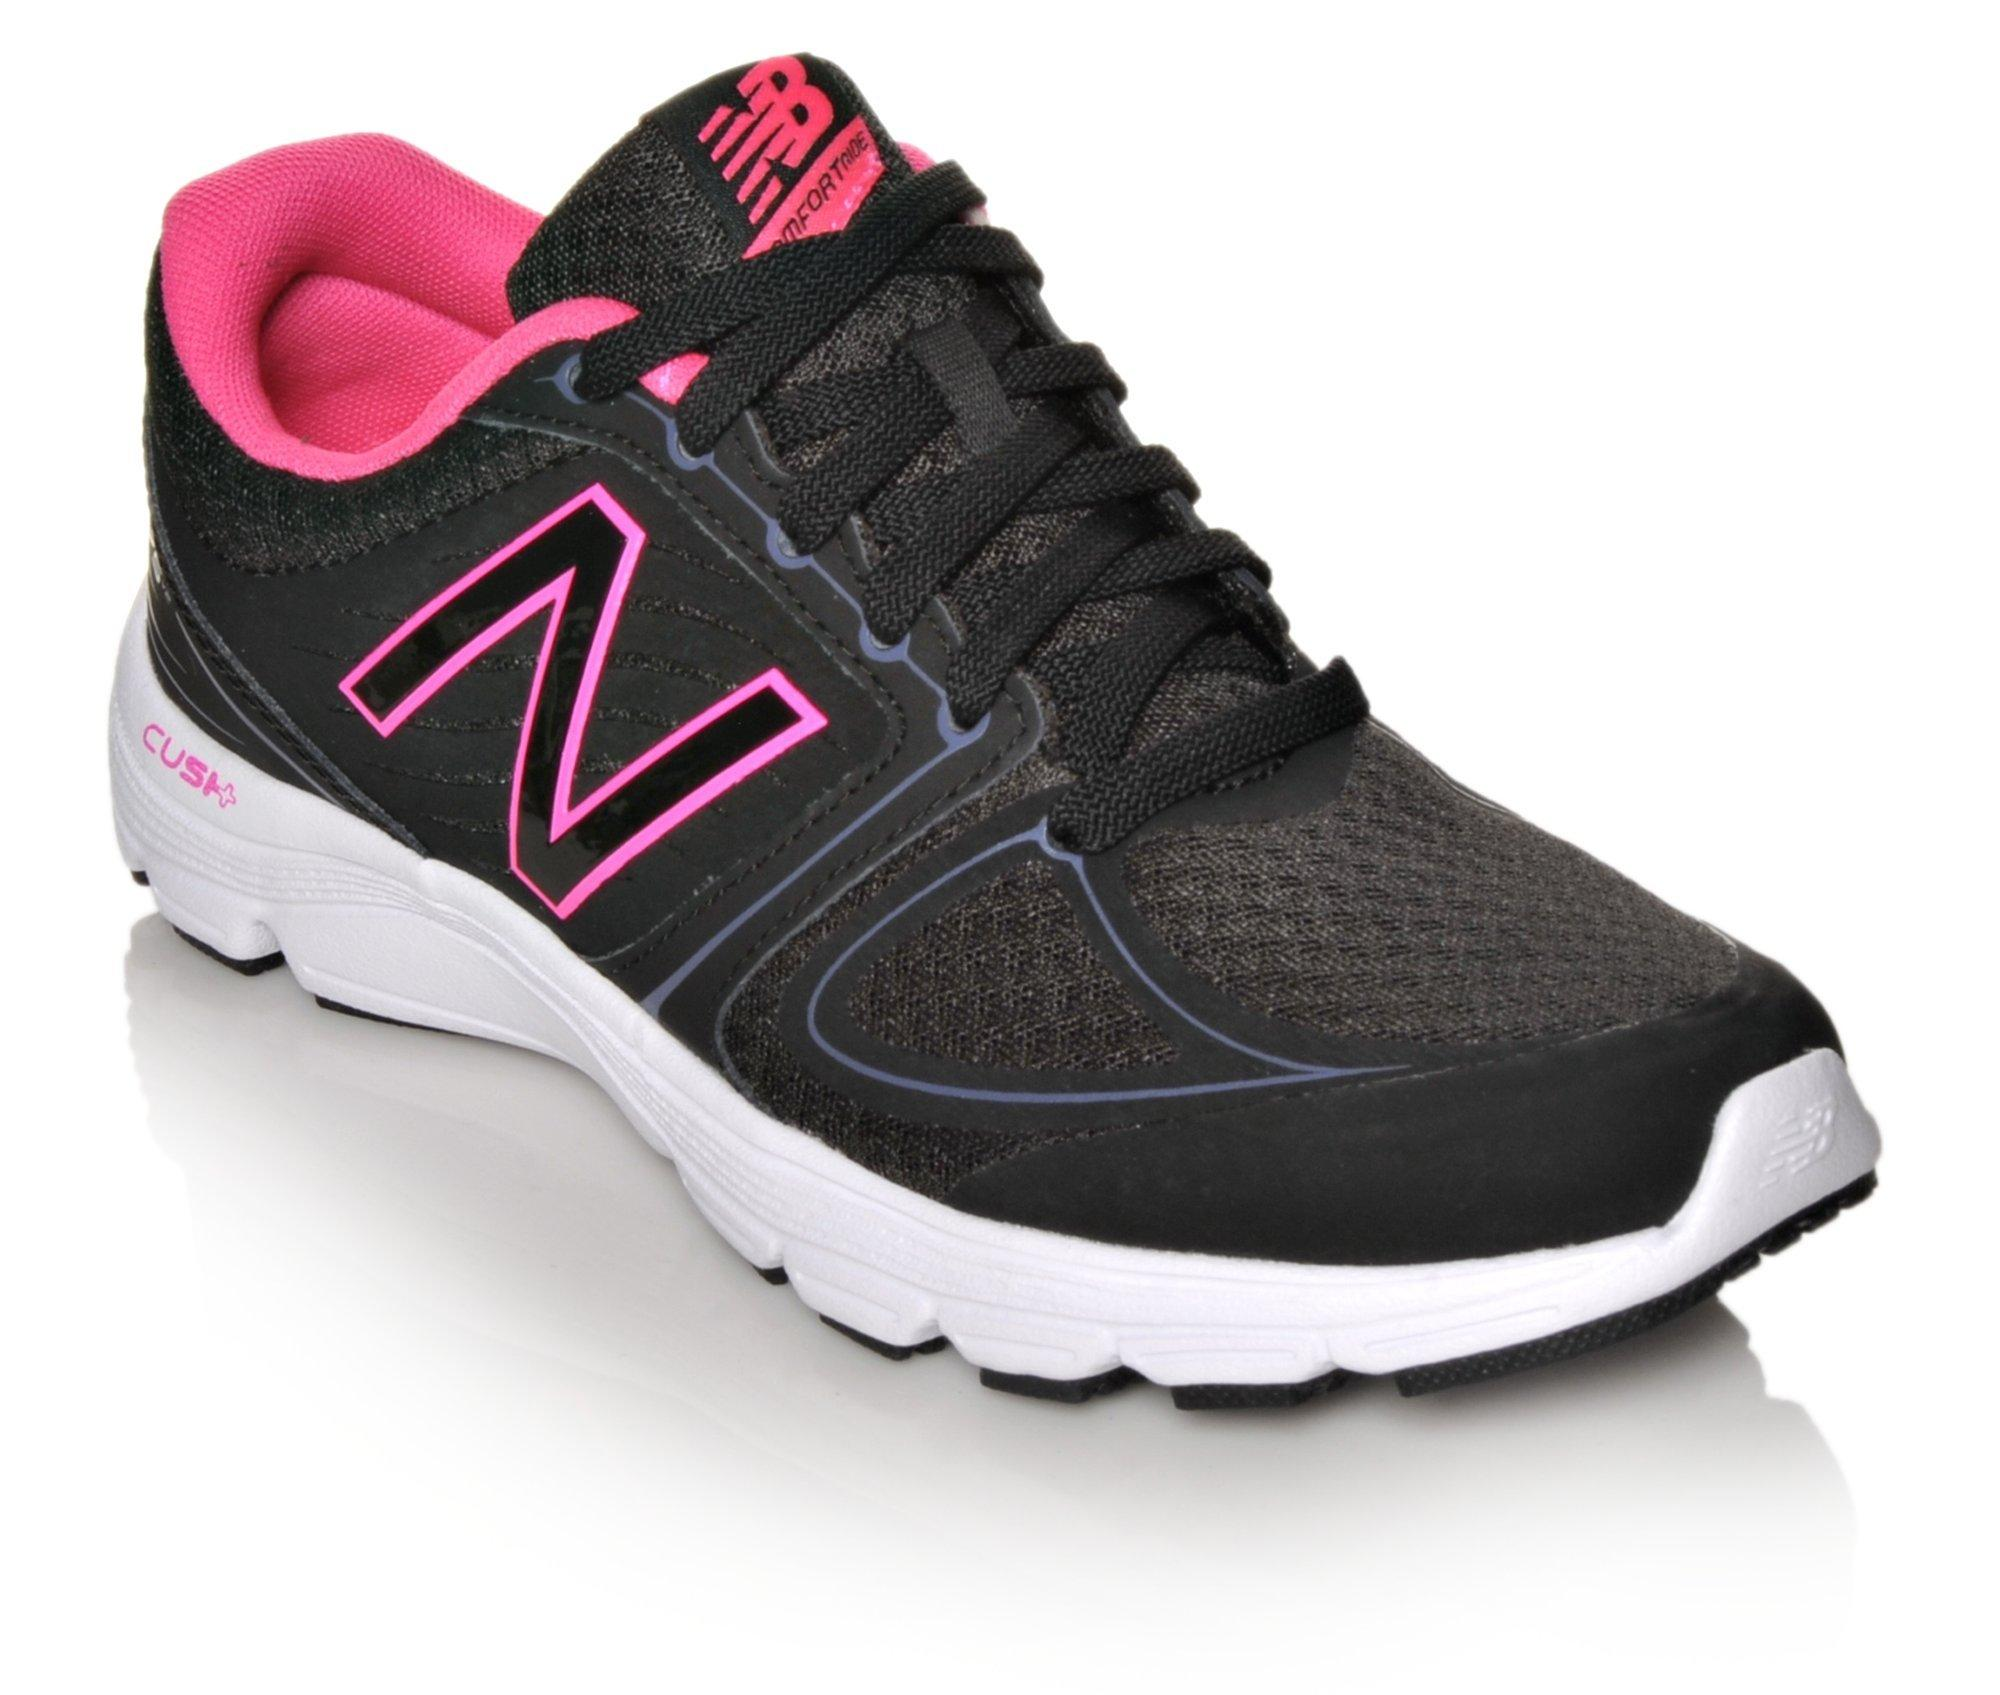 New Balance Cush 575 Reviews